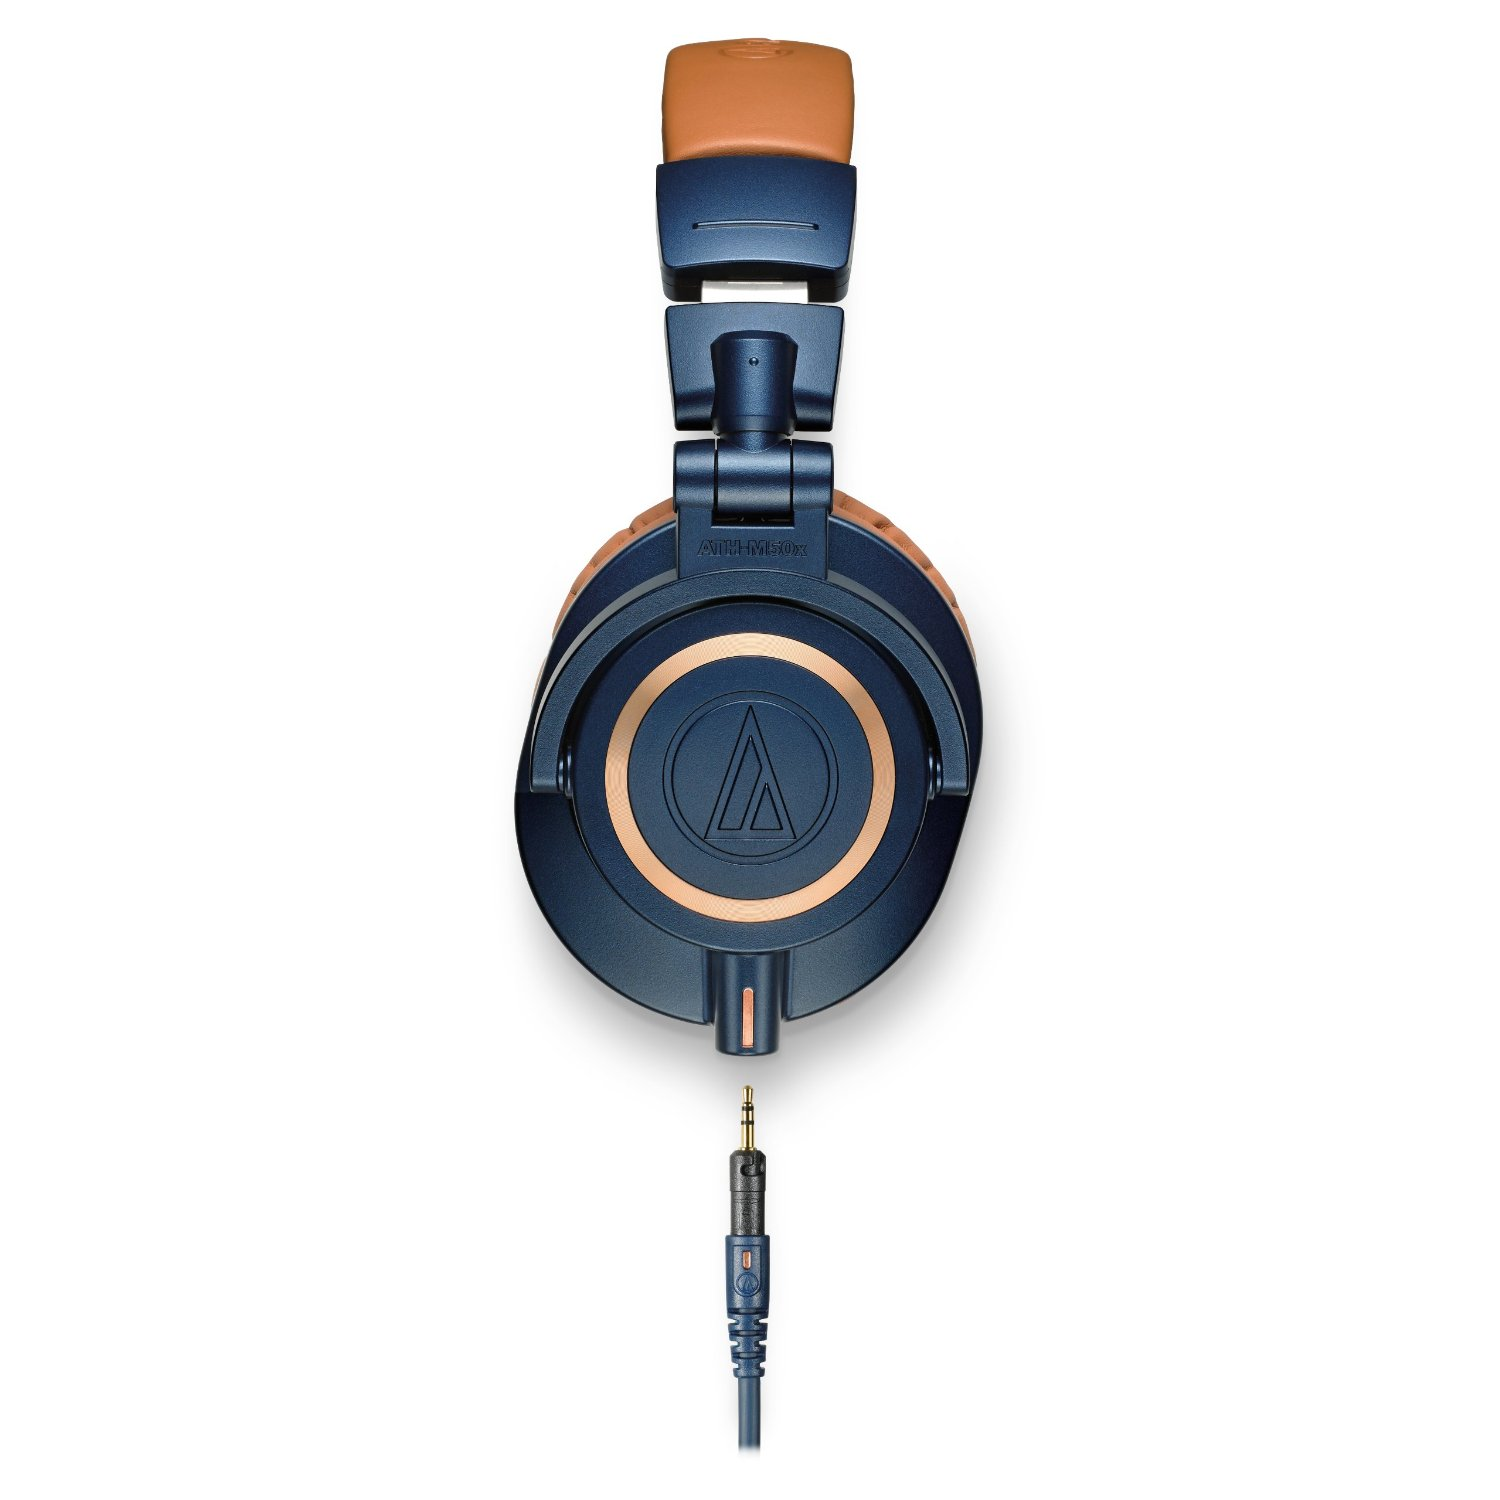 The Audio Technica ATH-M50x feature a detachable cable and closed back driver design.